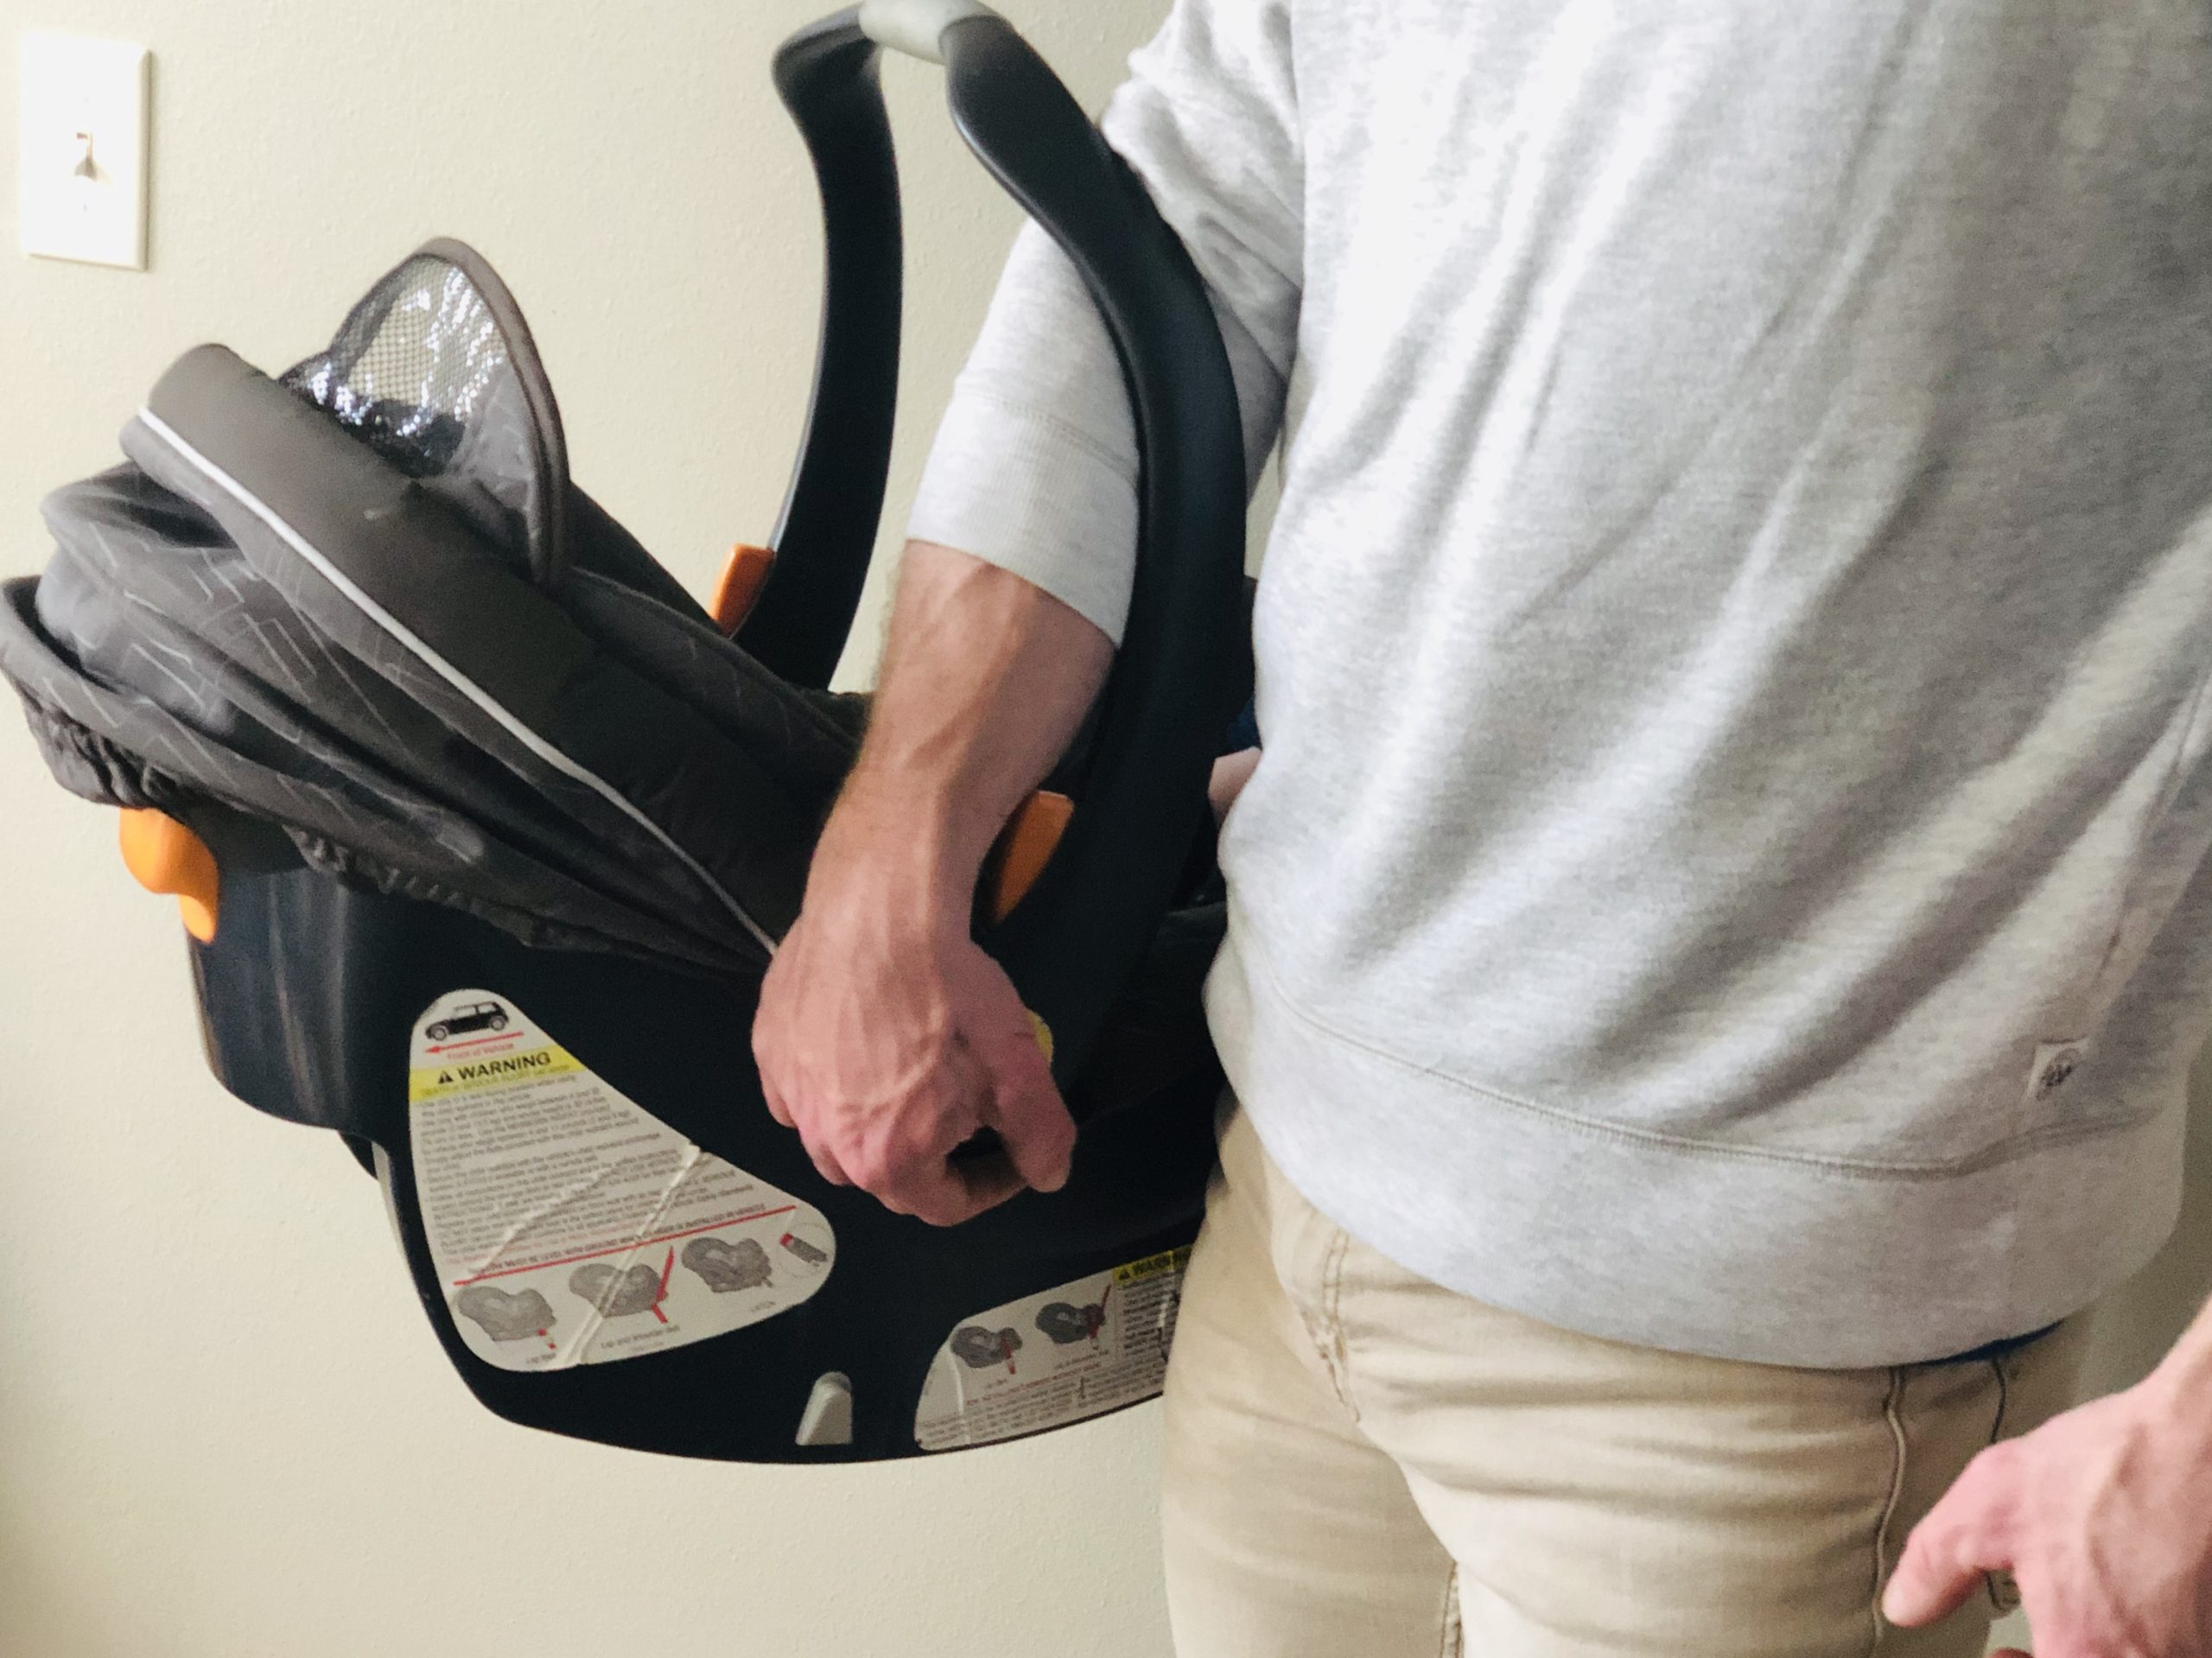 New Parent Lifehack: How To Carry a Baby Car Seat Without Causing Back & Shoulder Pain